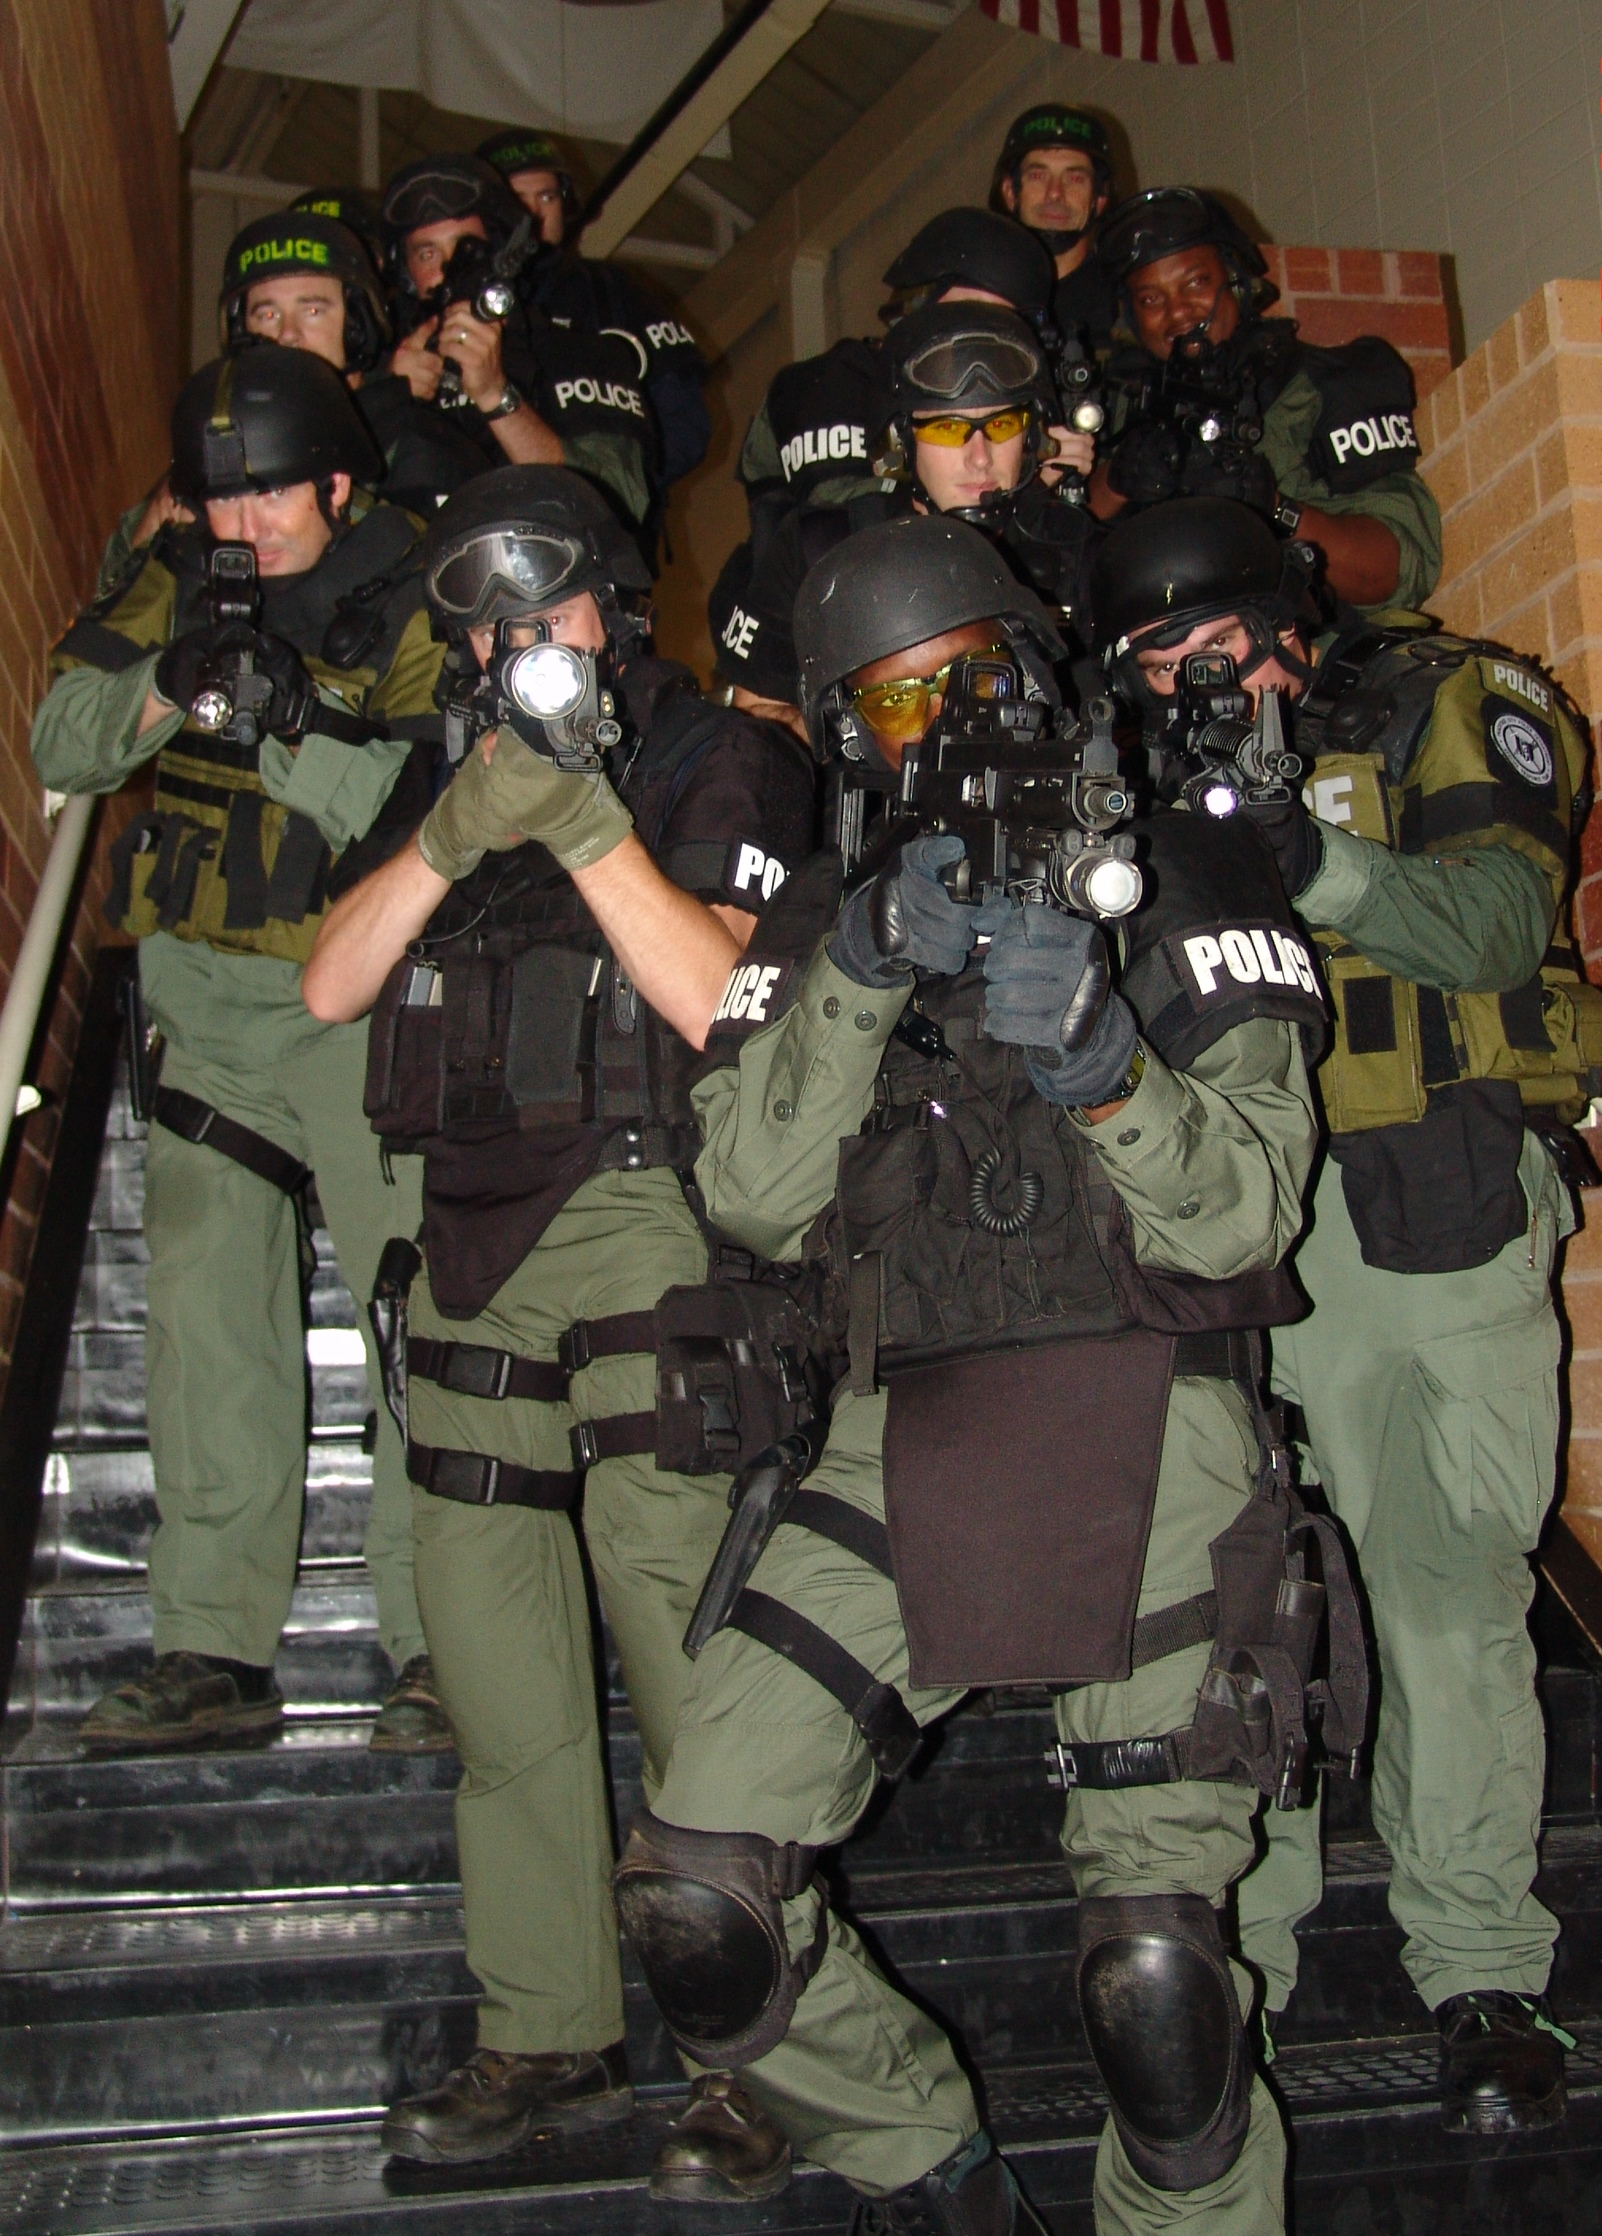 SWAT Team in Full Gearl Hold Up Weapons on Staircase